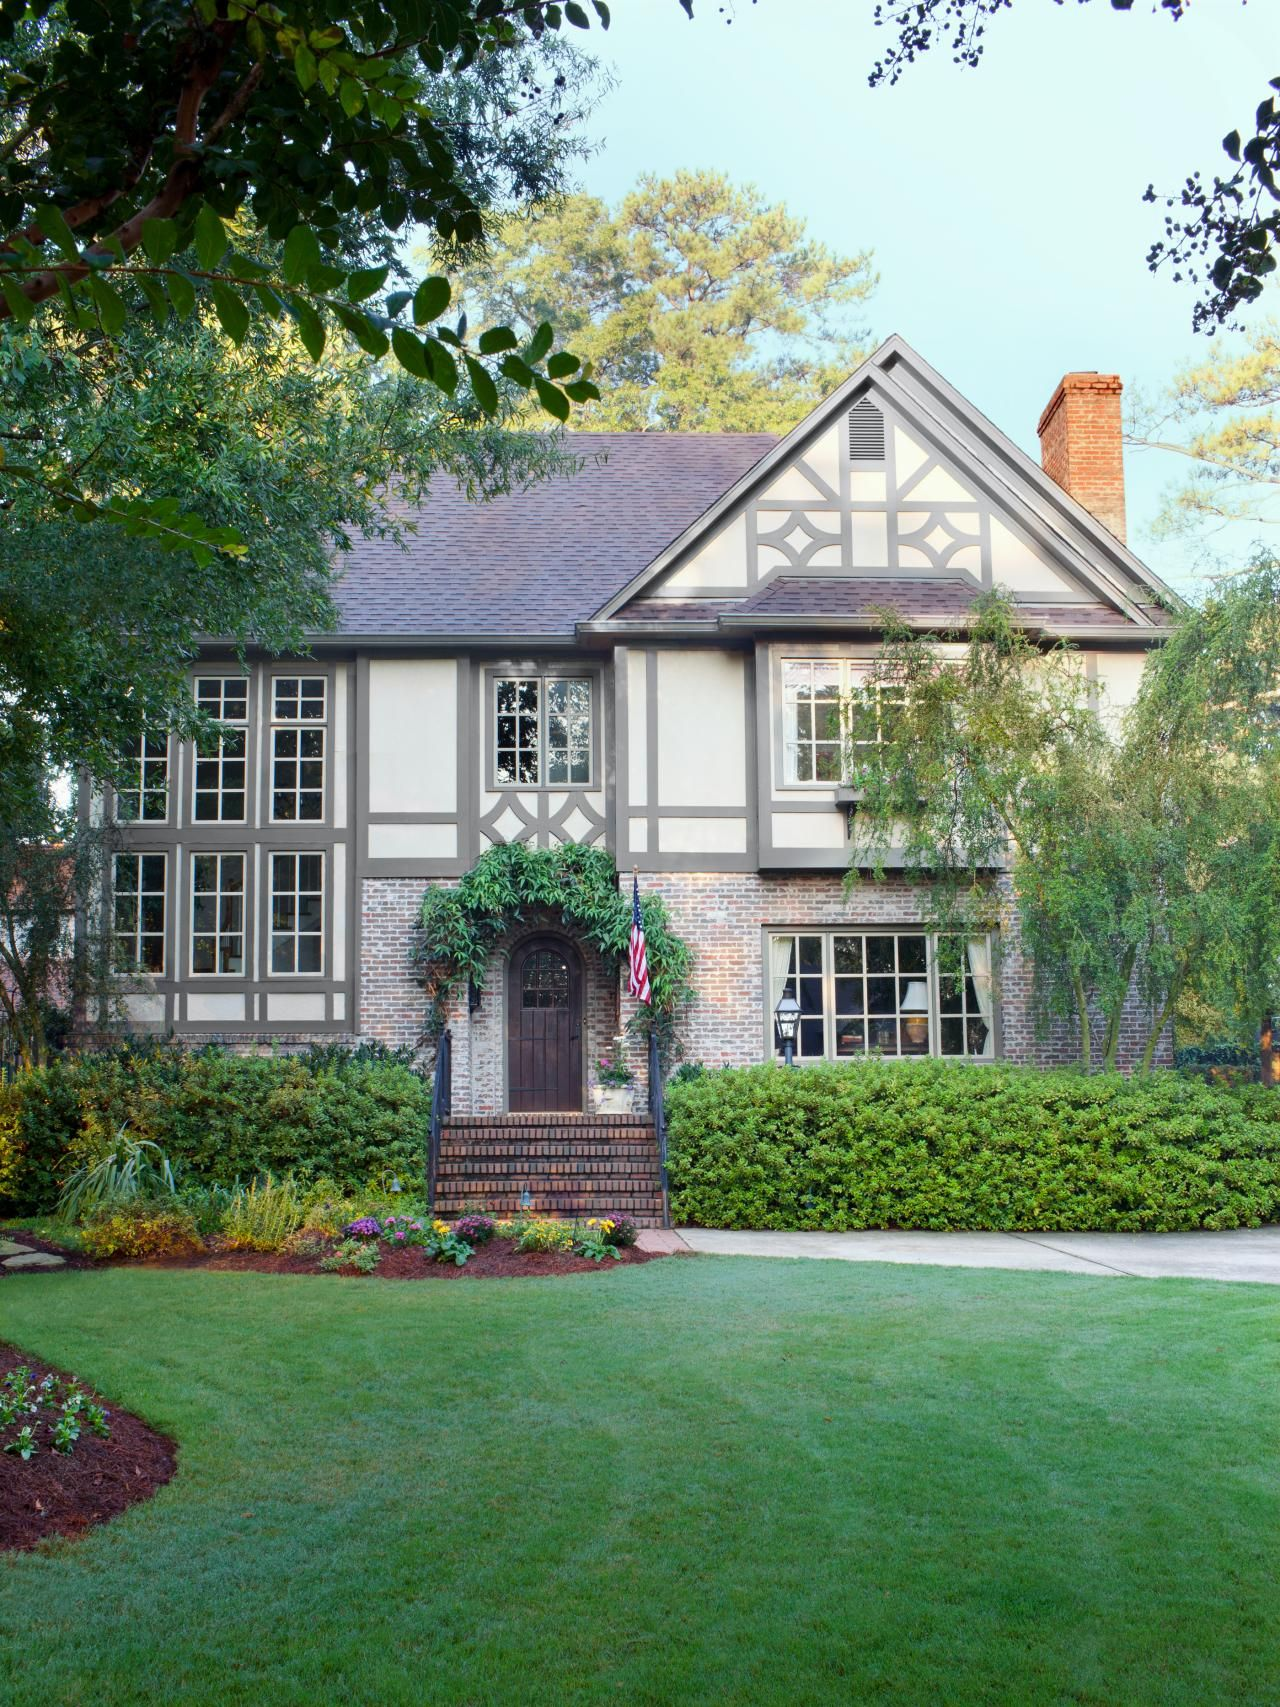 Stealable curb appeal ideas from tudor revivals - What makes a house a tudor ...